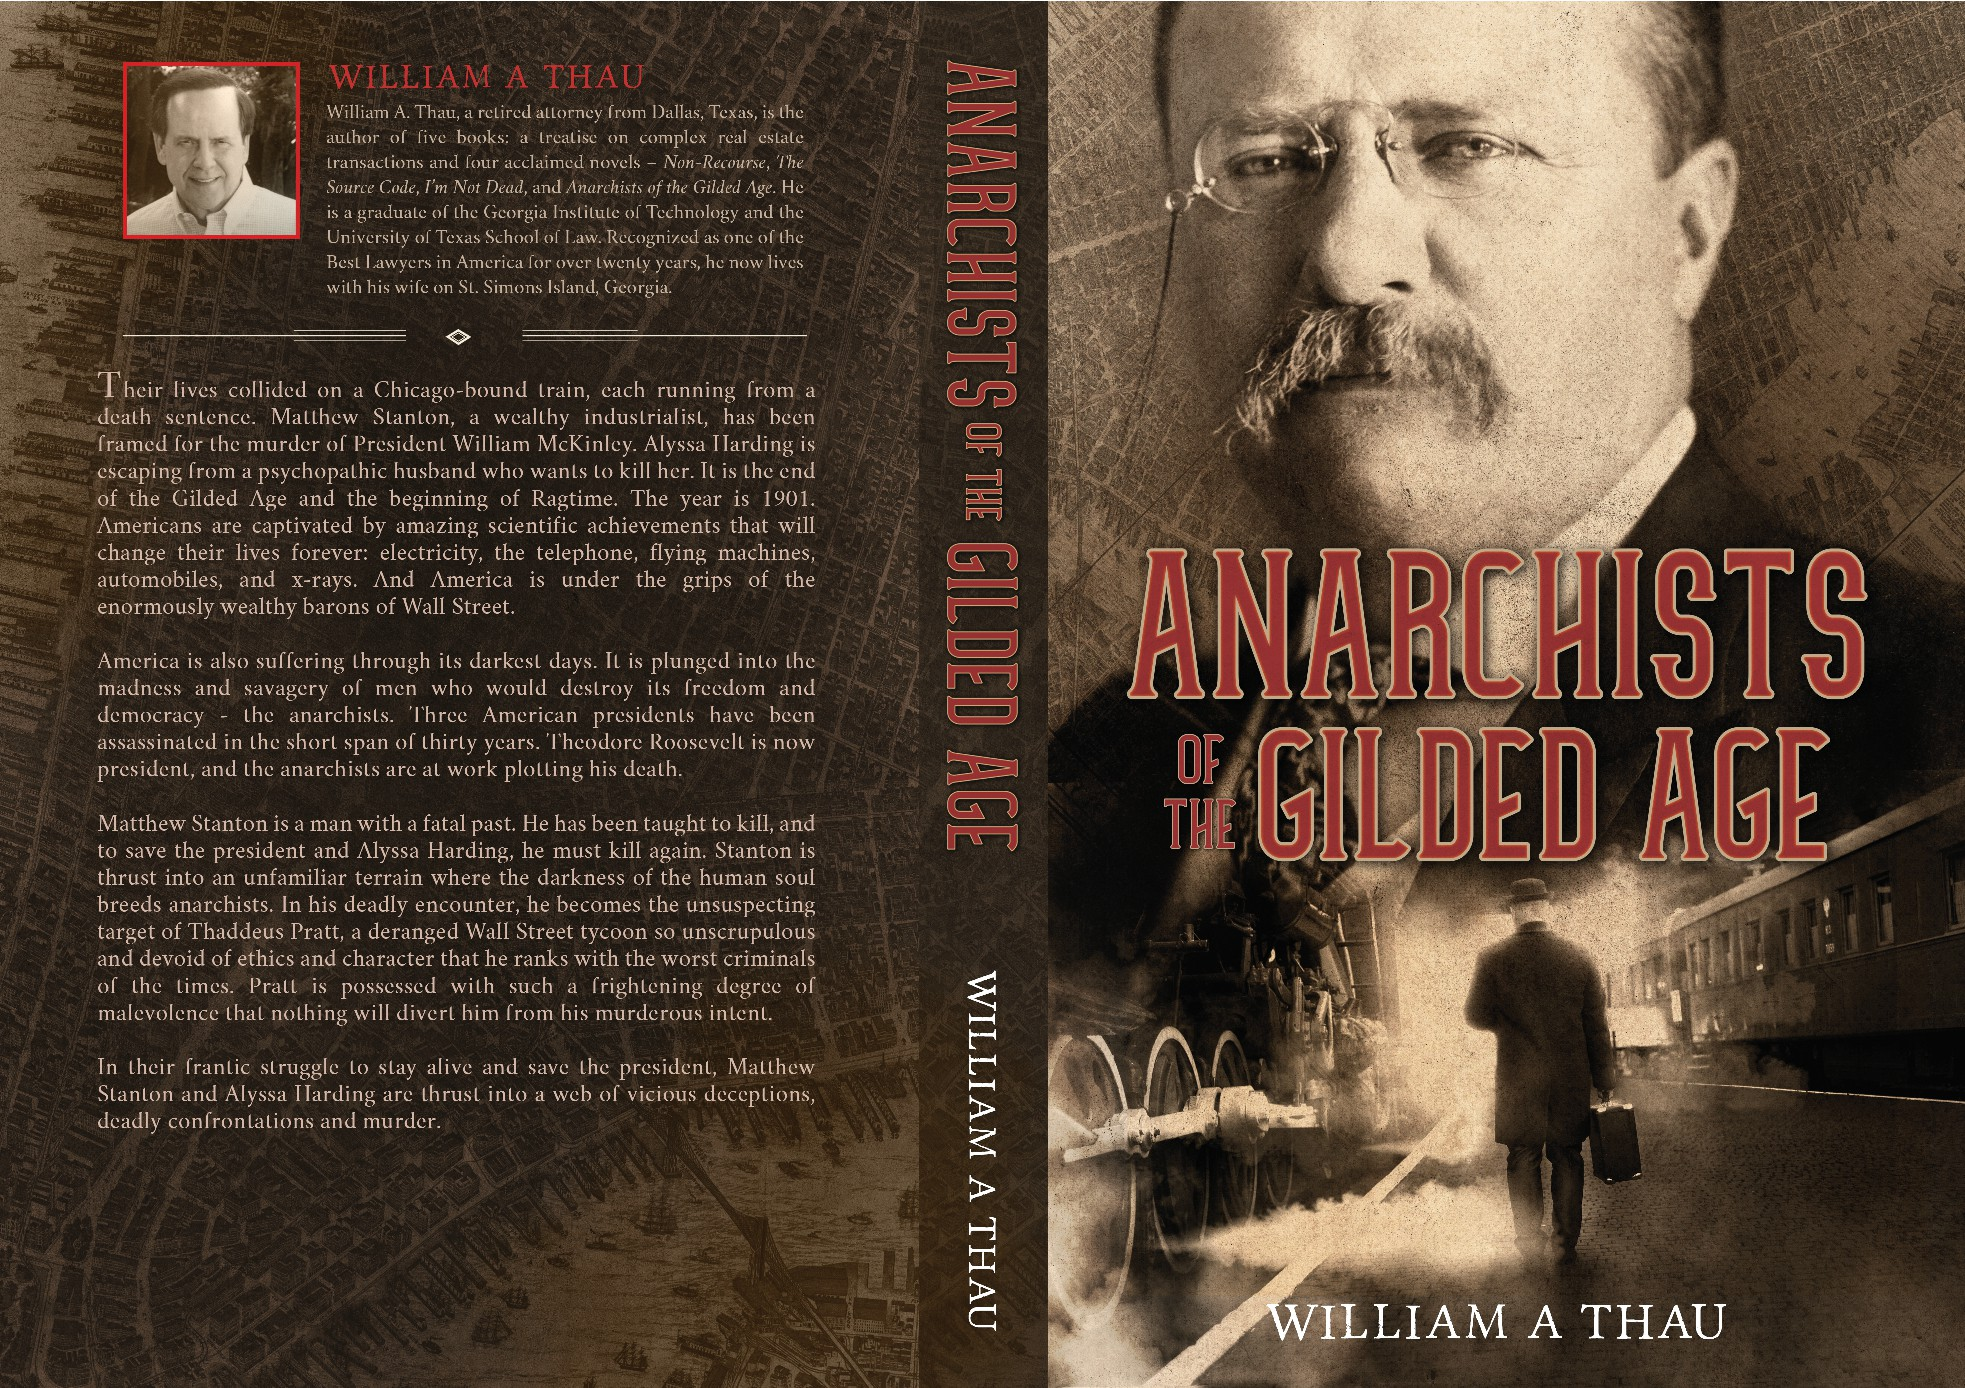 A deadly encounter between a framed industrialist with a fatal past, and anarchists.